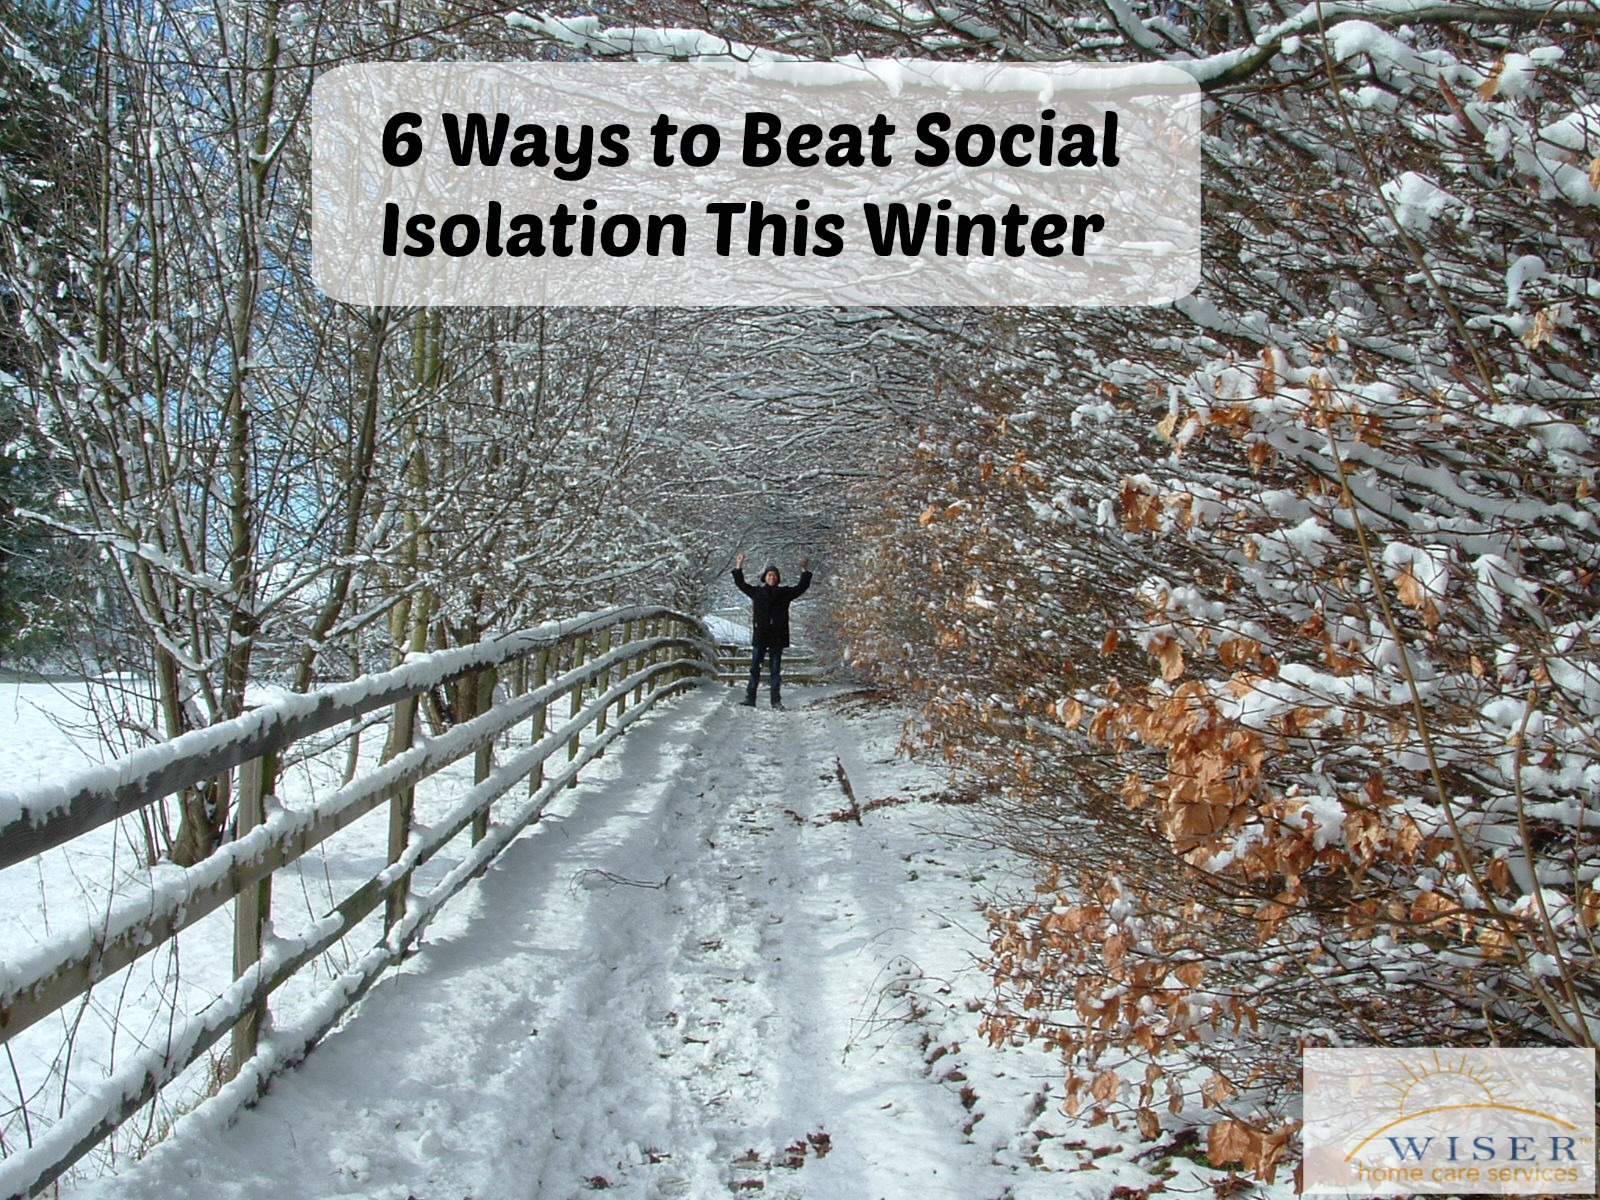 With the poor weather, the risk of your elderly loved one facing social isolation in the winter is greatly increased. These tips help reduce their risk.